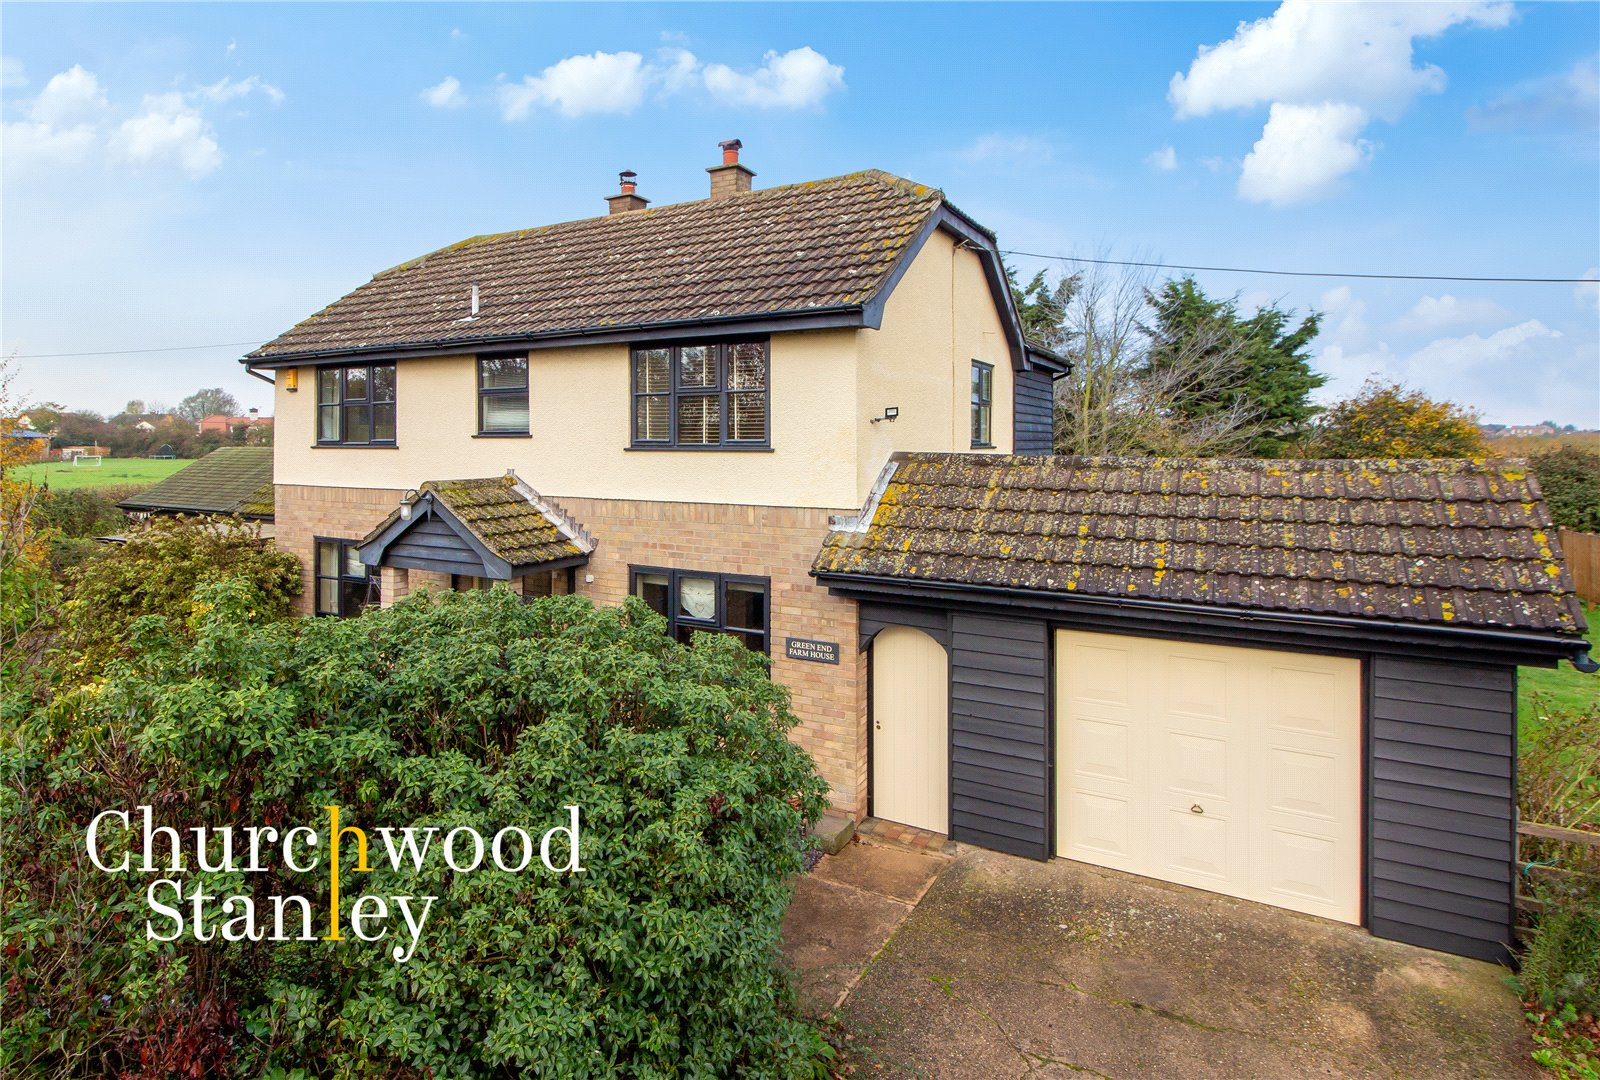 3 bed house for sale in Green End Lane, Great Holland, Frinton-on-Sea - Property Image 1